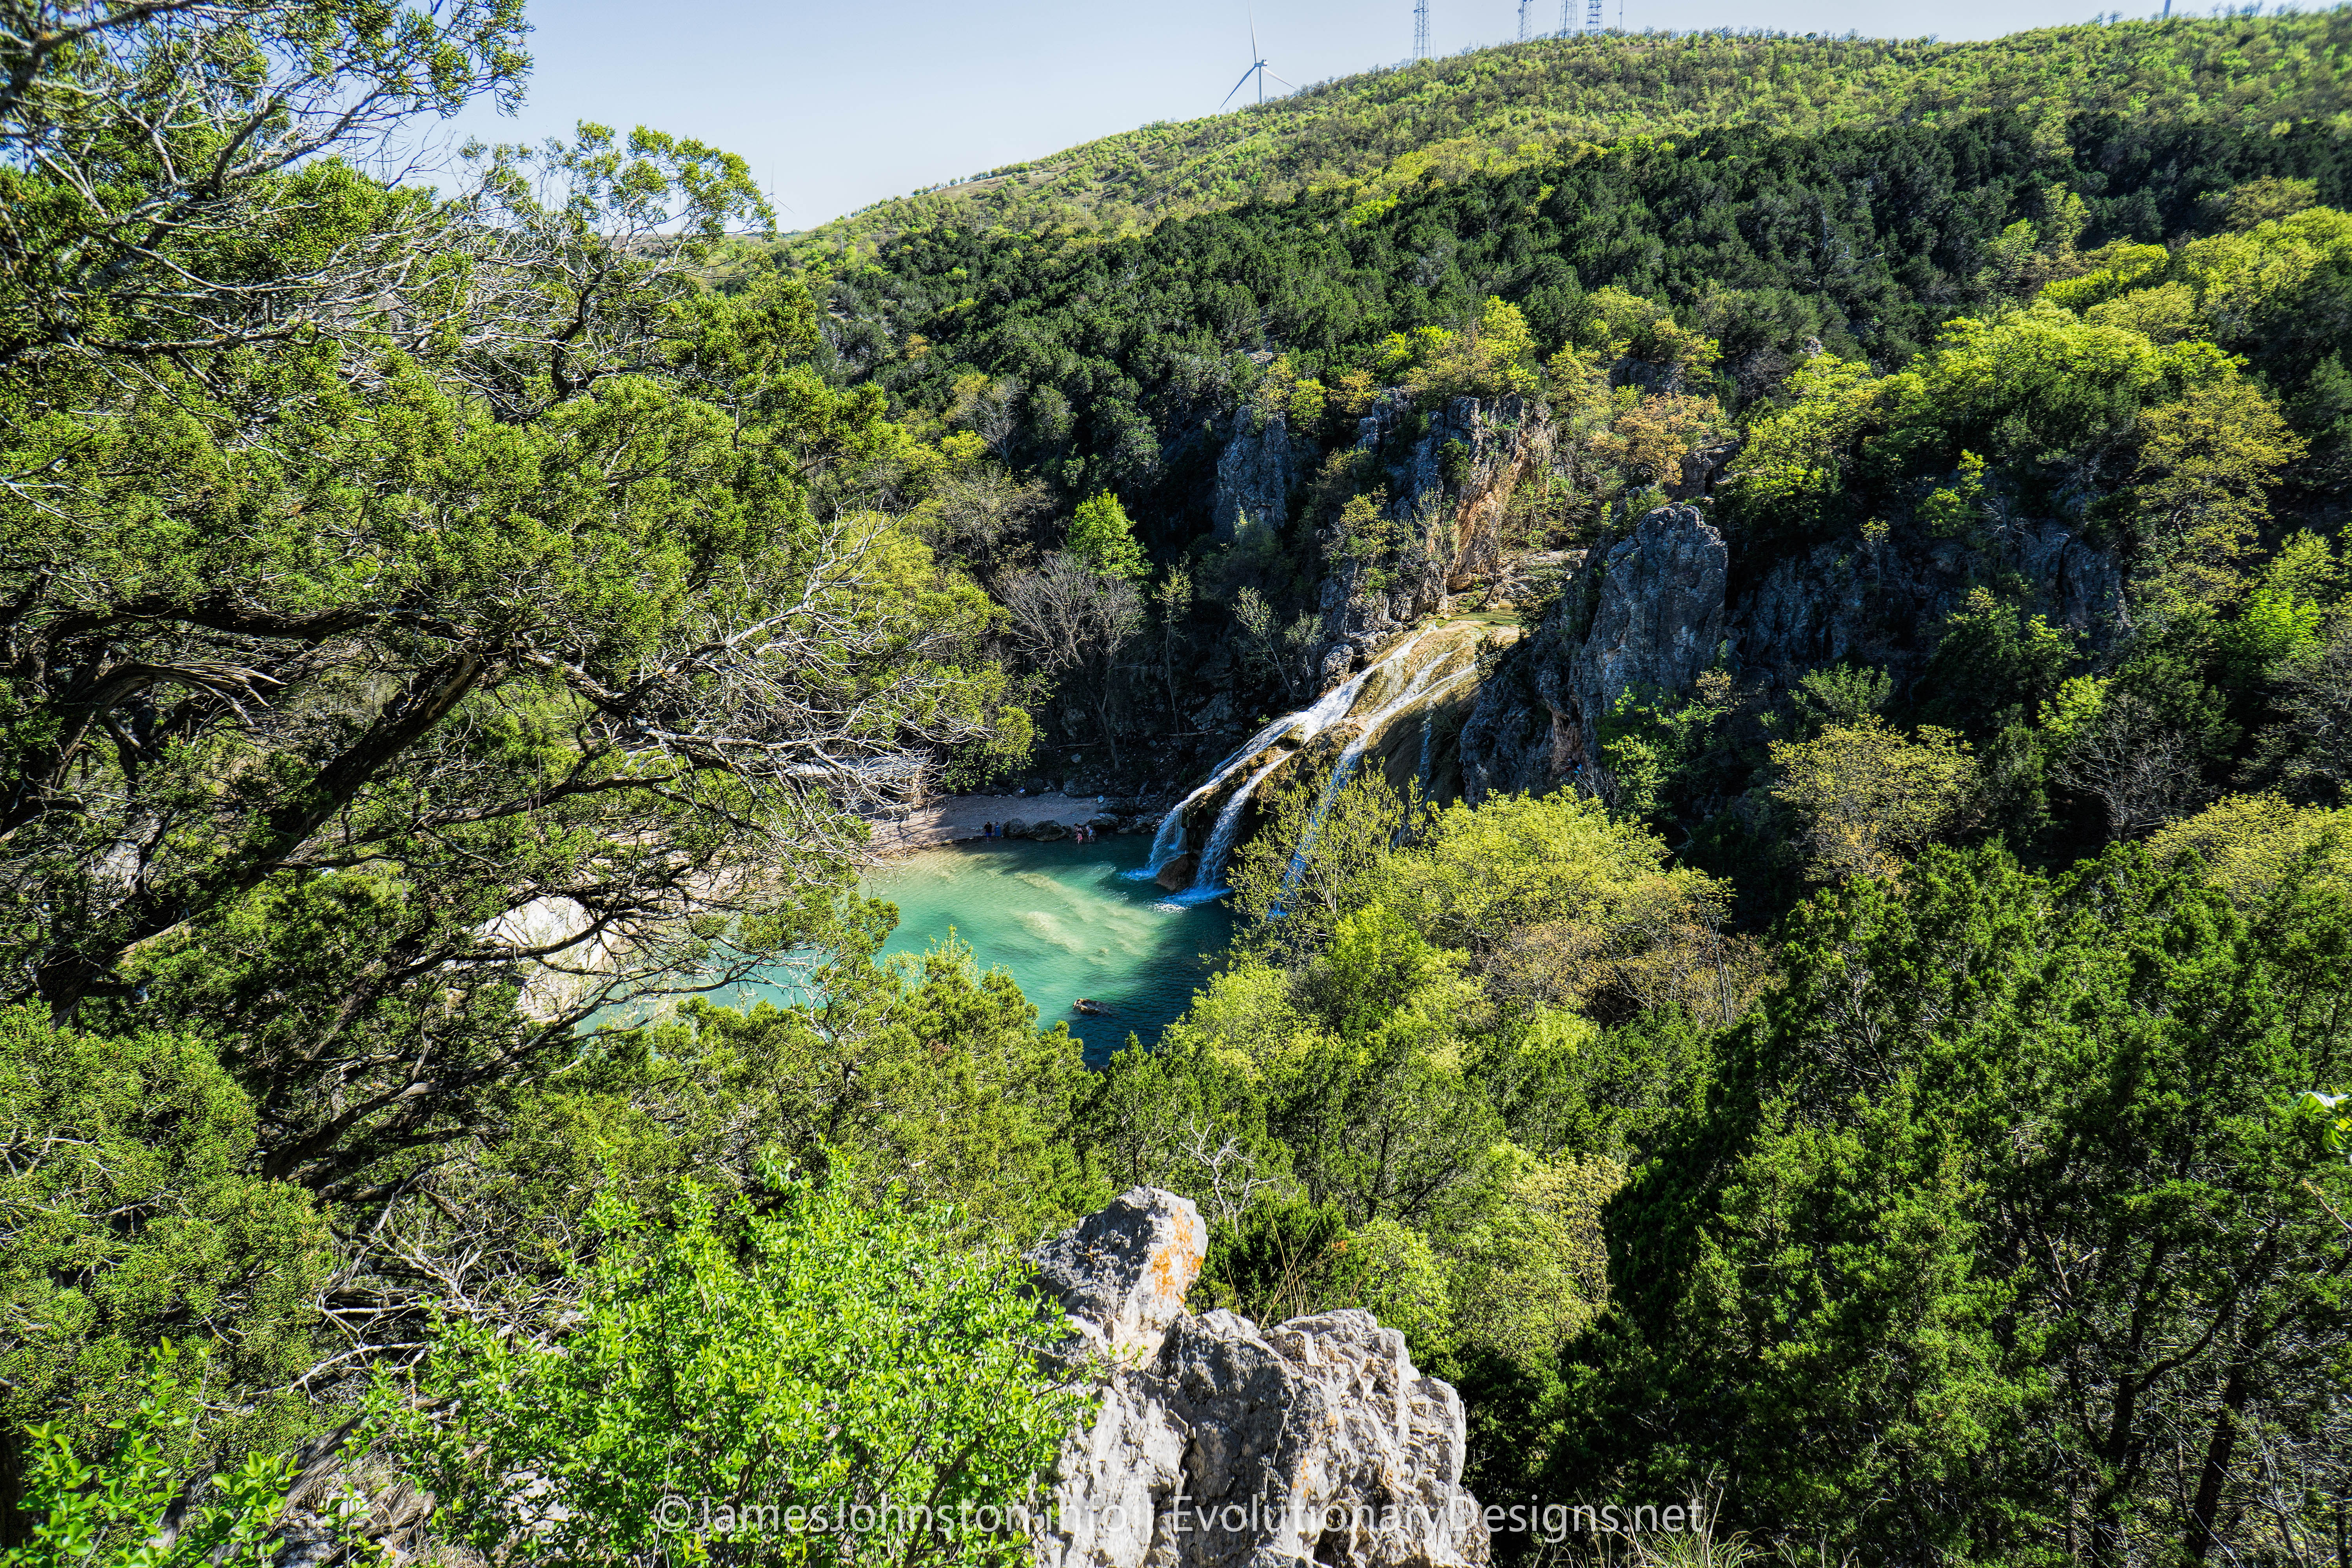 Turner Falls Park in Davis, Oklahoma - The falls from above